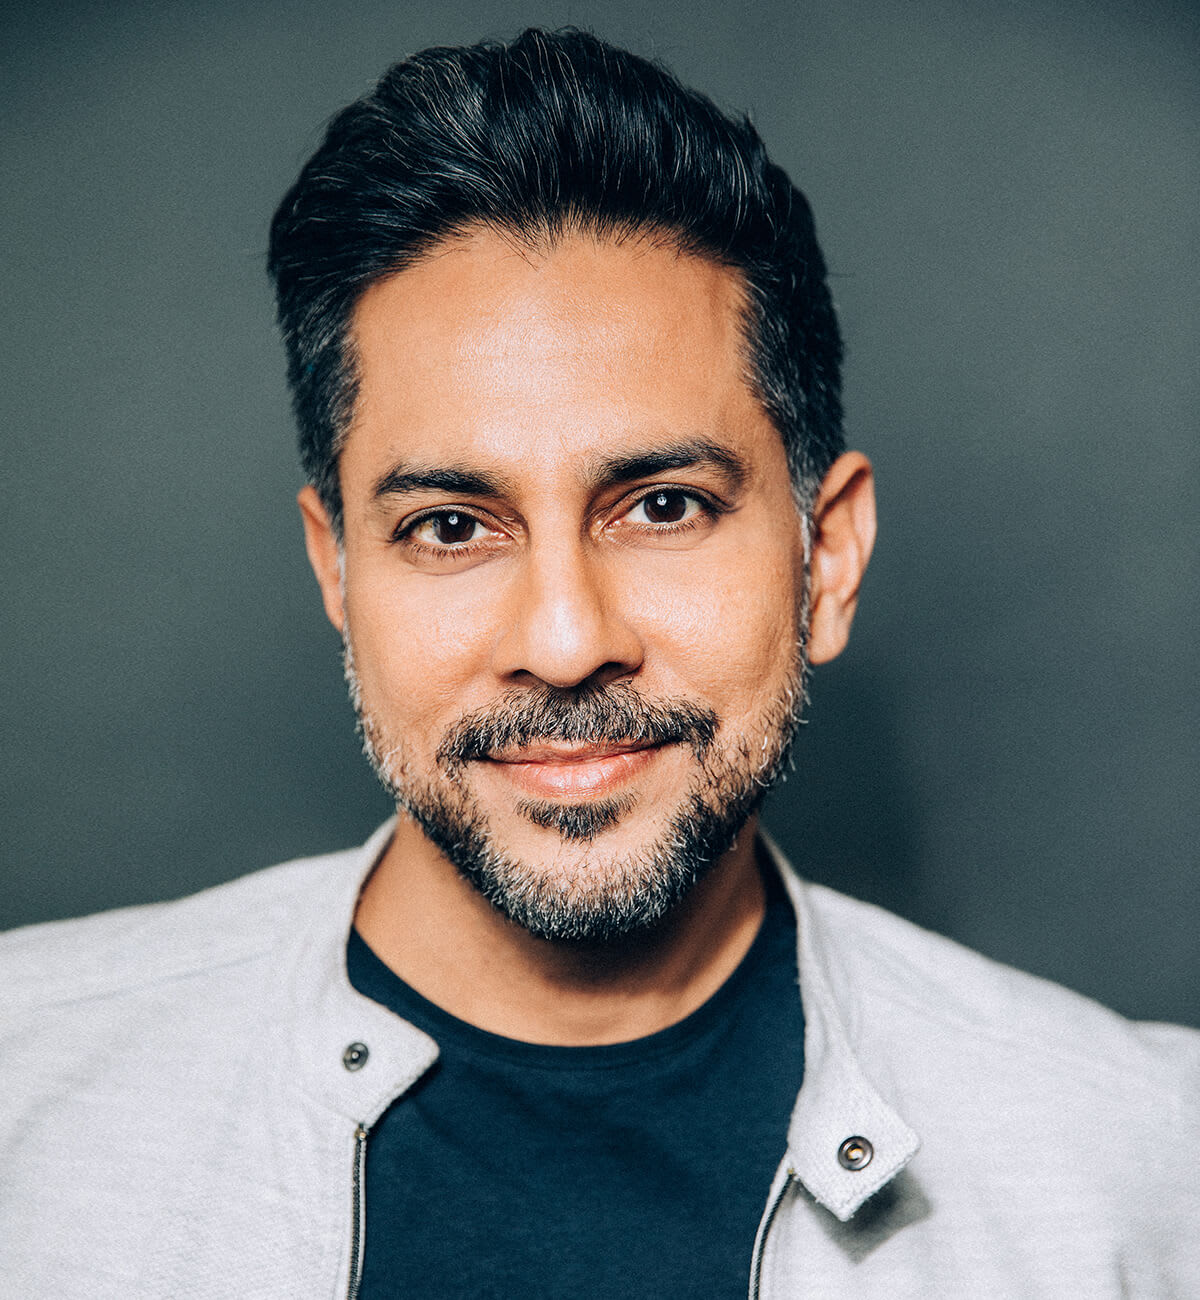 Portrait of Vishen Lakhiani